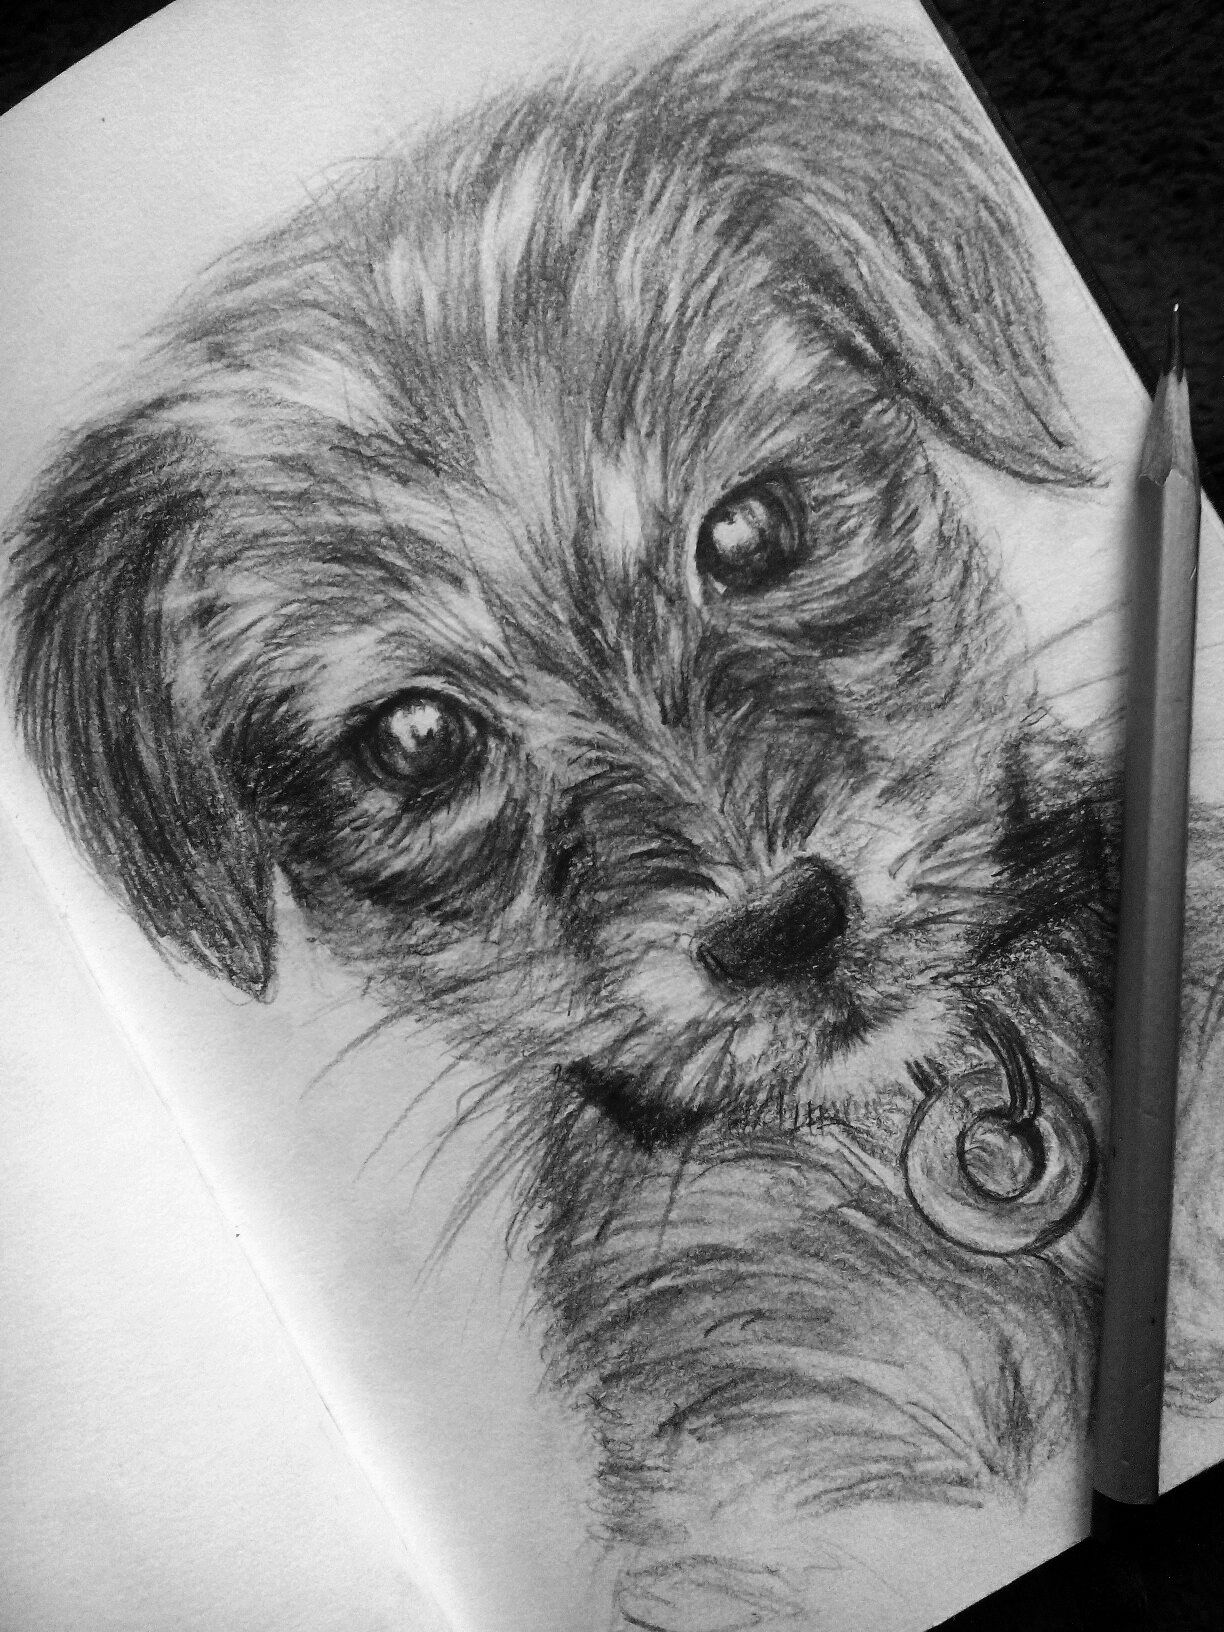 how to draw a realistic dog puppy drawing pencil cute dog pencil drawing of a dog how realistic a draw to